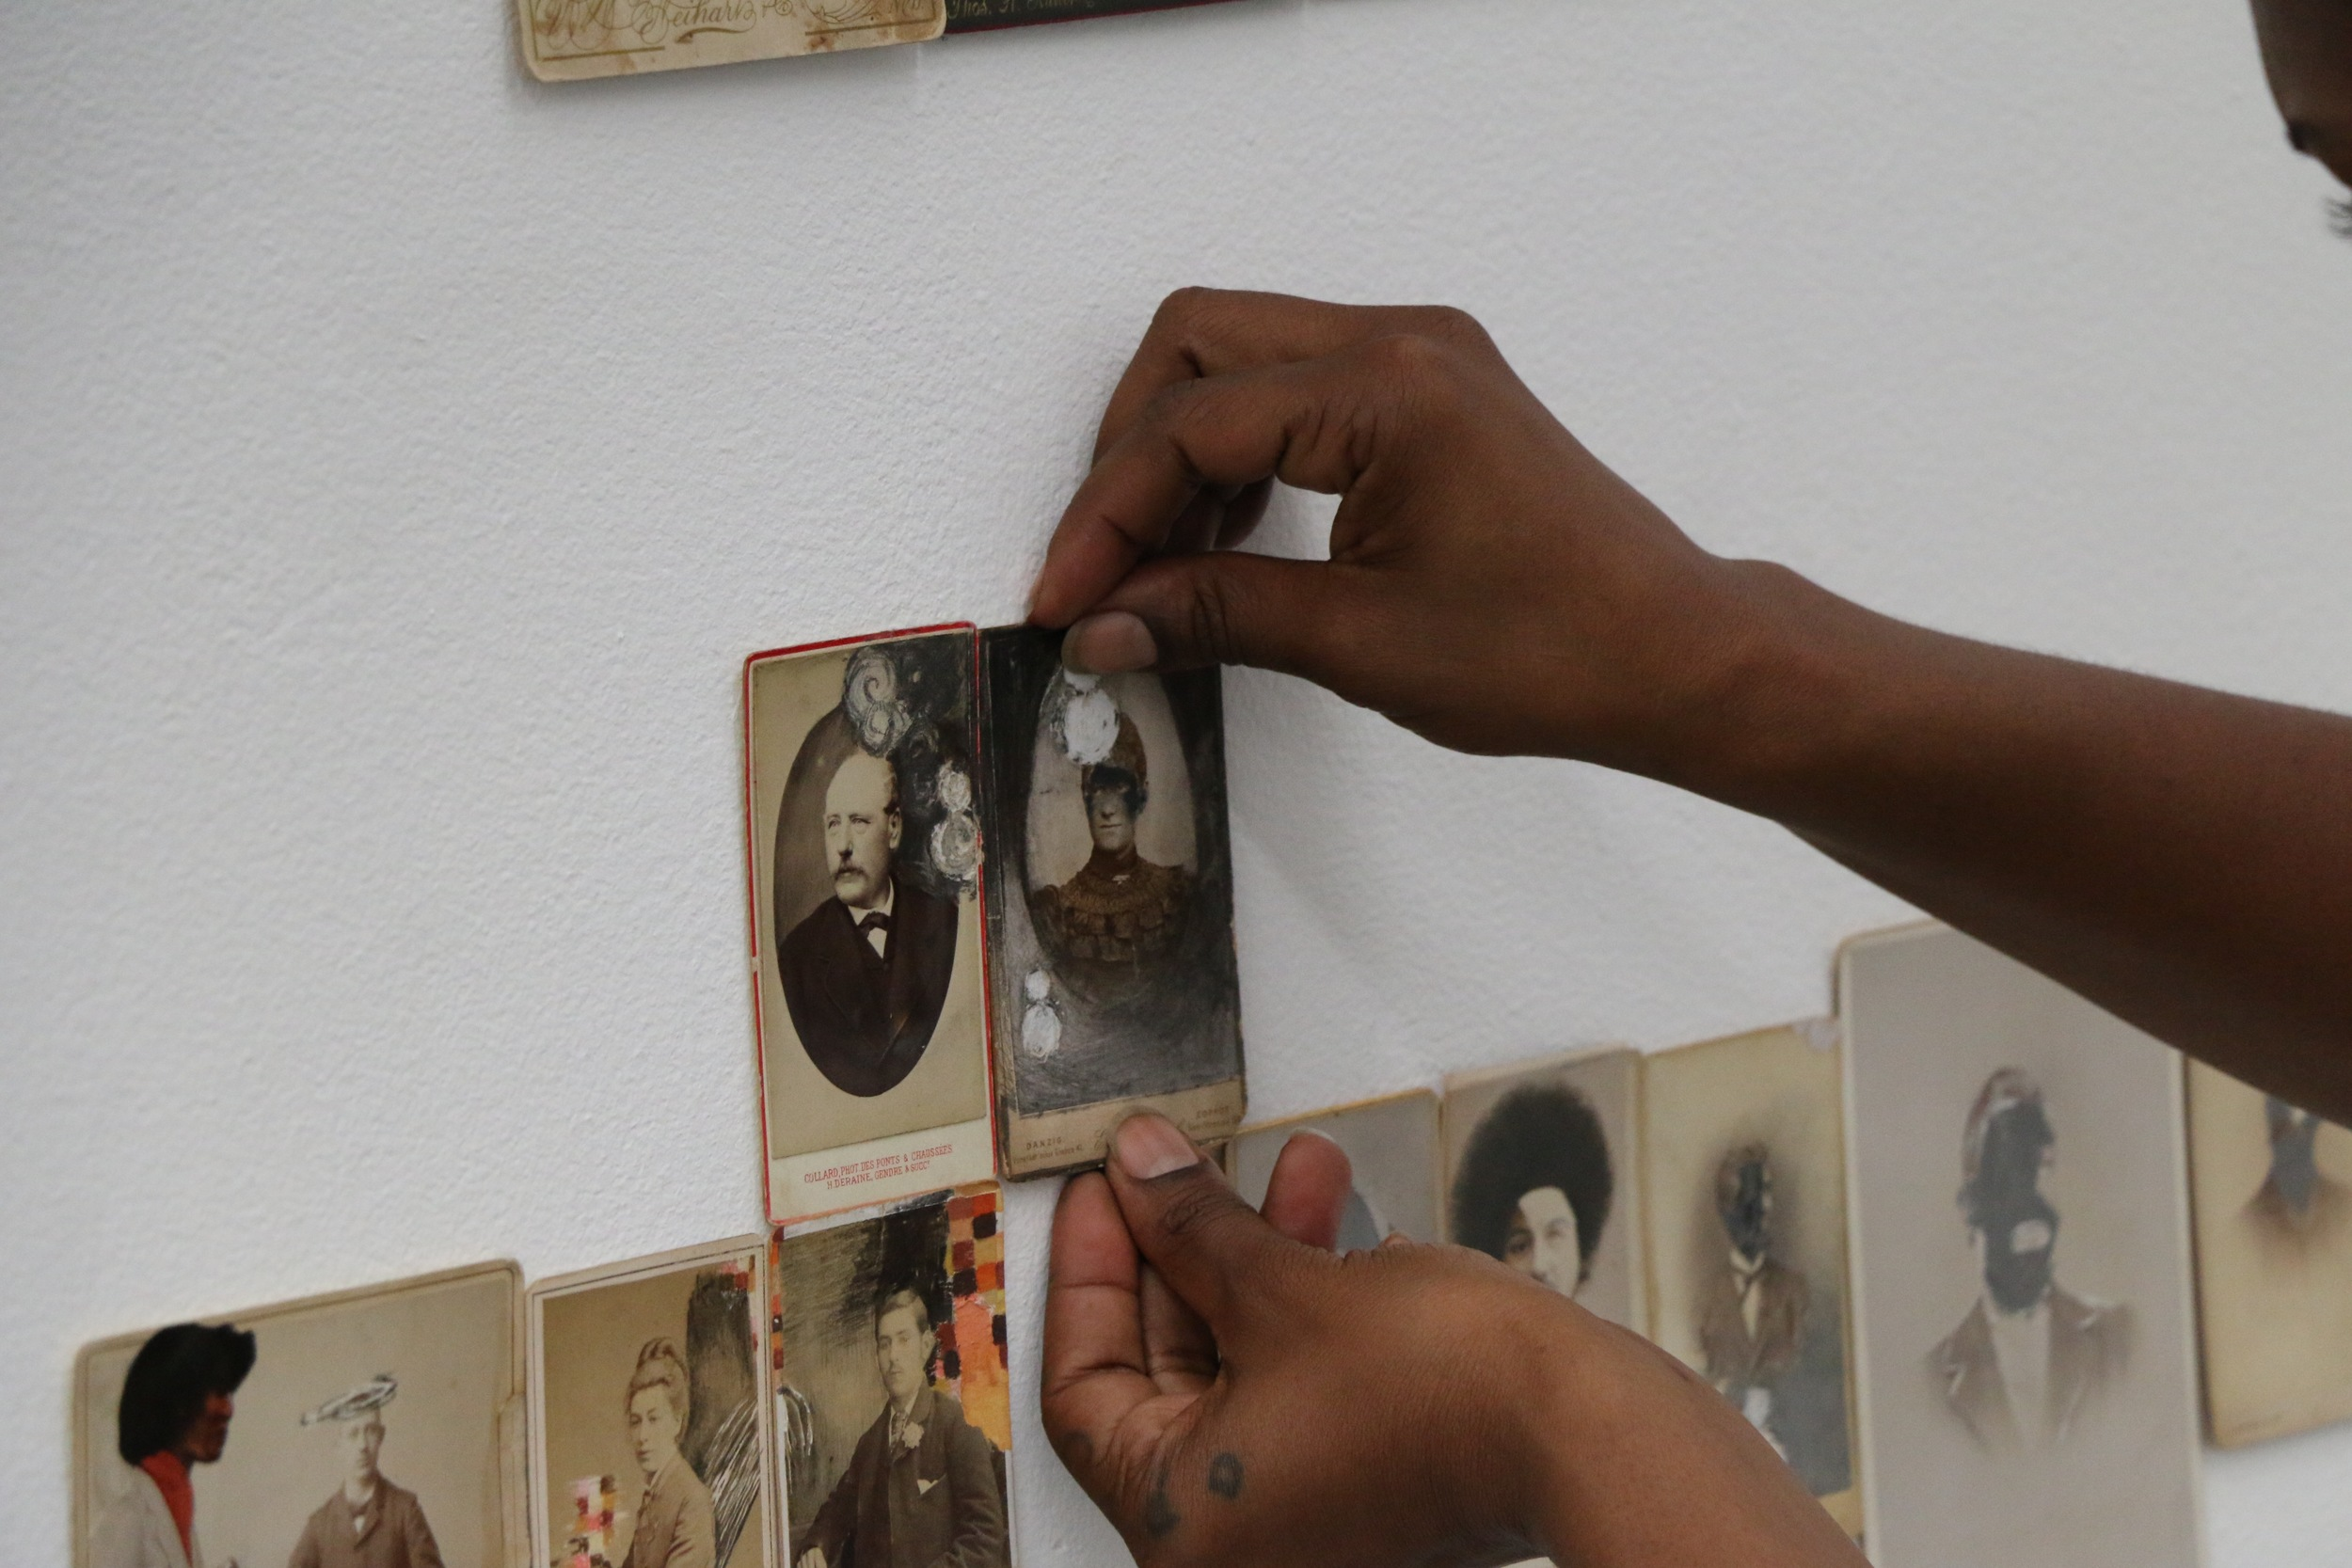 JESSICA WIMBLEY, 2015 Cabinet Cards, mixed media, dimensions variable